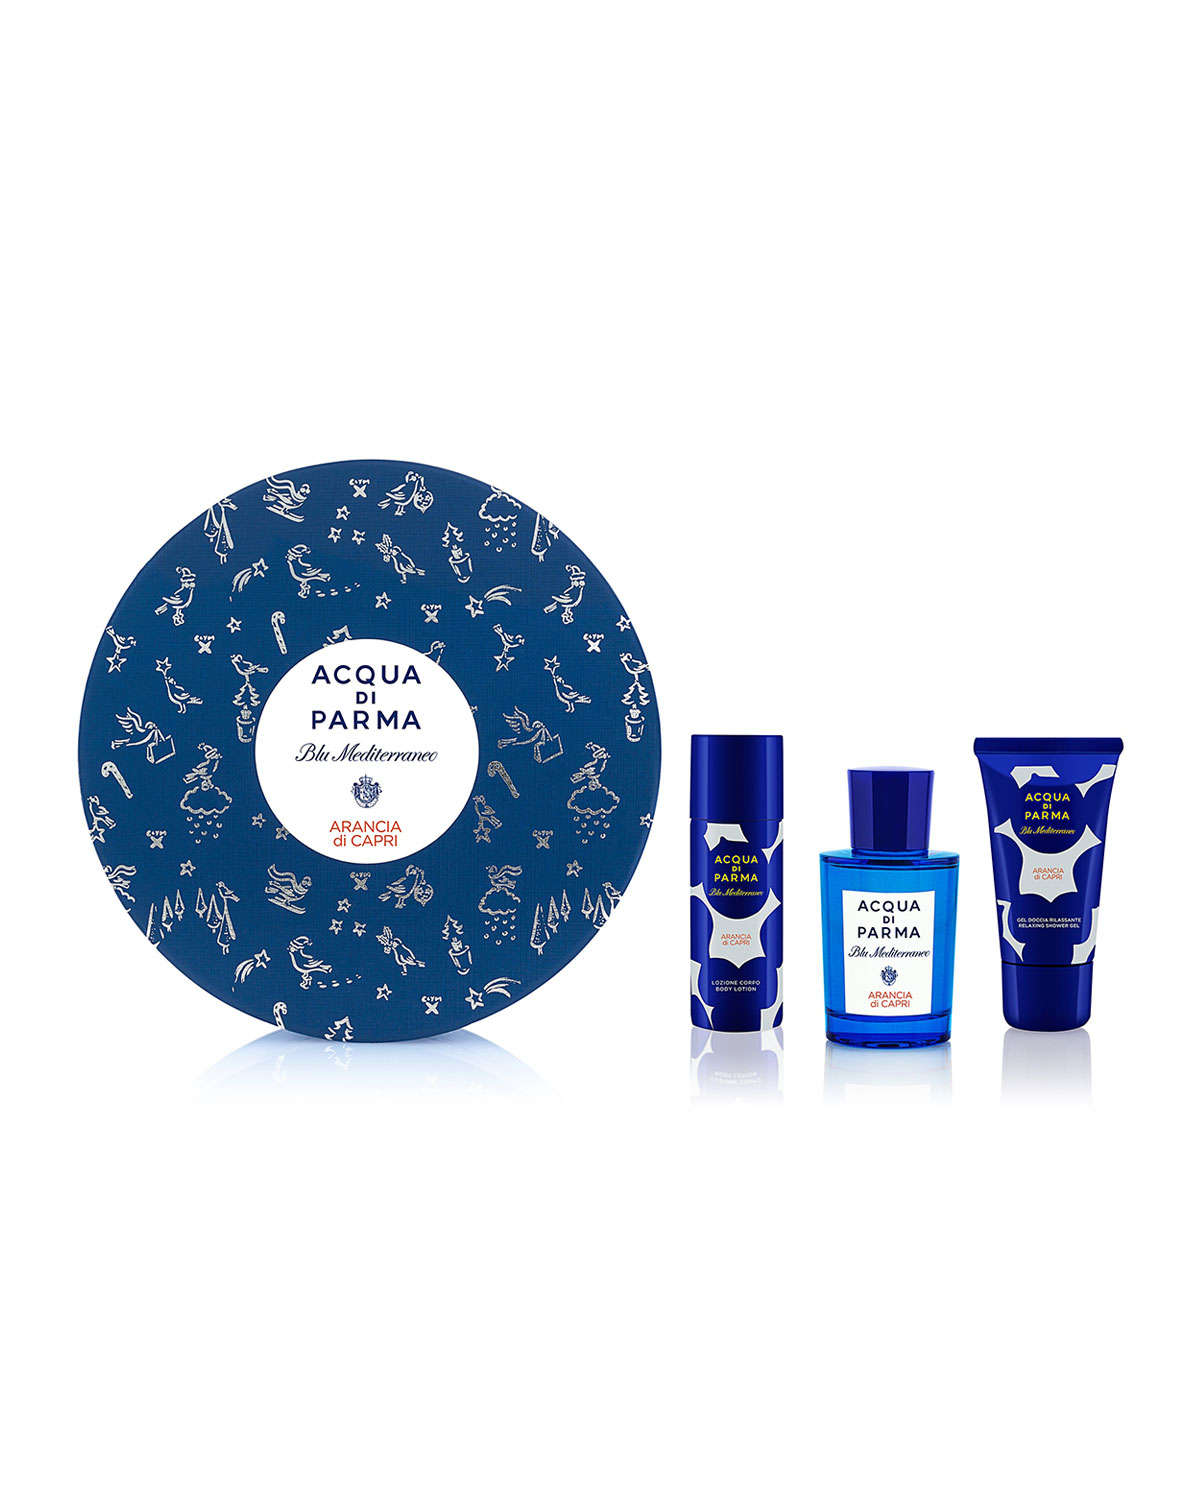 Acqua Di Parma ARANCIA DI CAPRI GIFT SET ($135 VALUE)